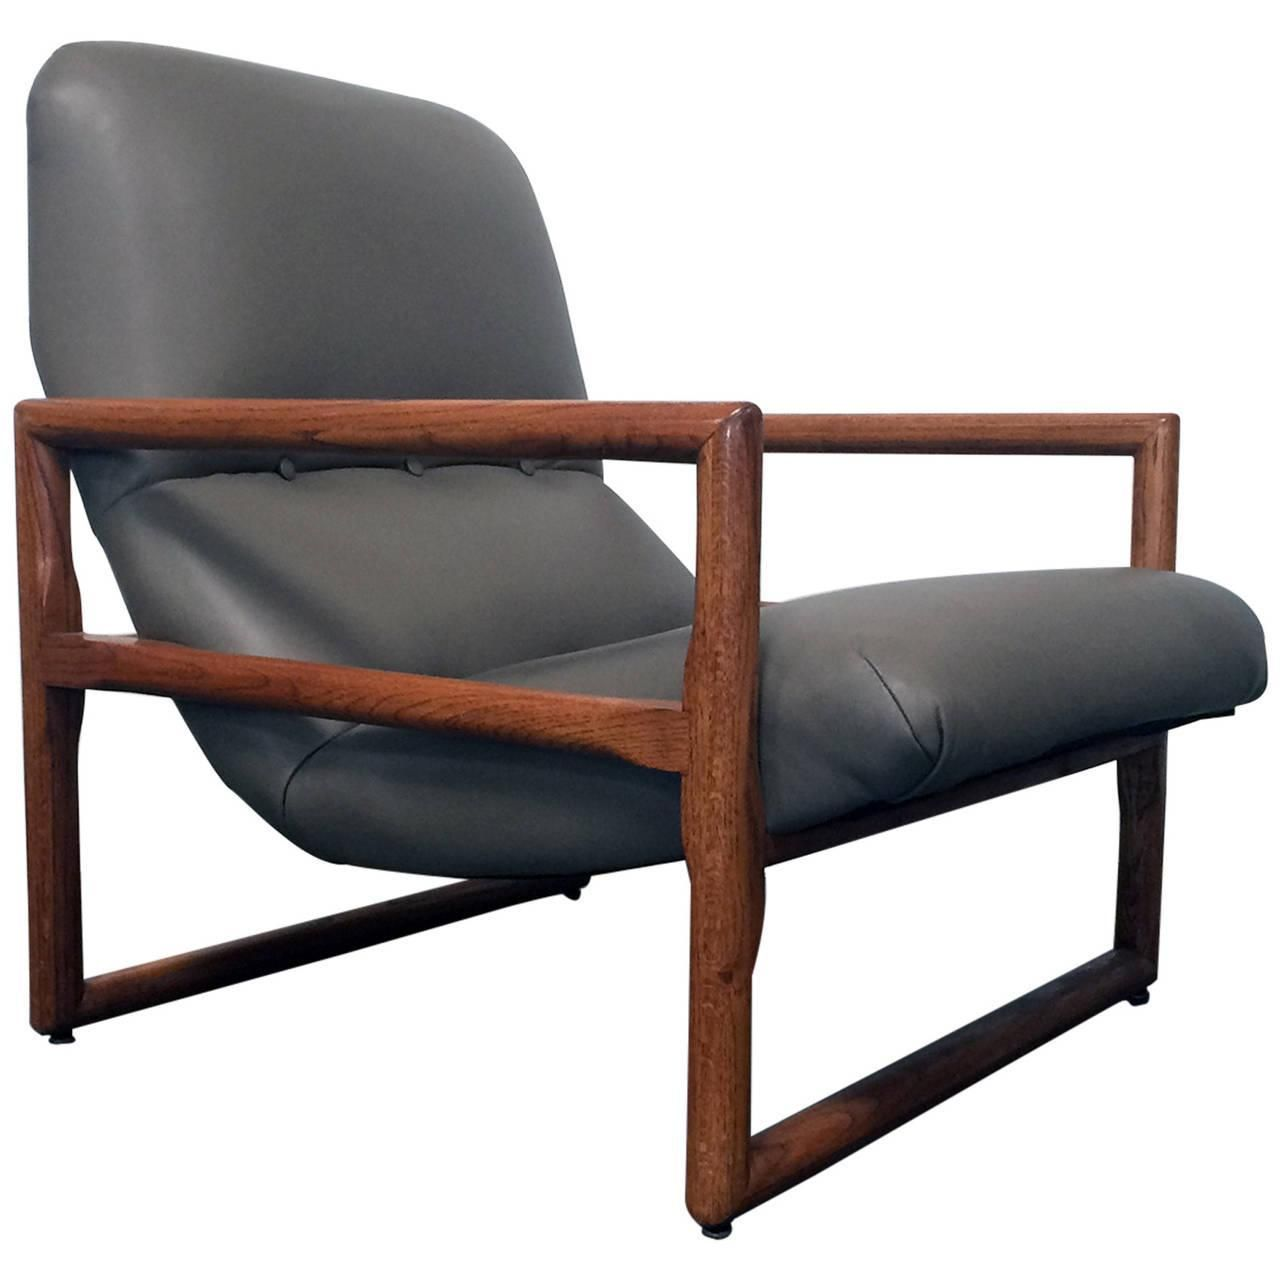 "Milo Baughman ""Cube"" Arm Chair . Finished with grey leather and an oak frame. Originally designed in 1948 this chair speaks to a distinct moment in modern design. This would be wonderful in any room of your home or office!"